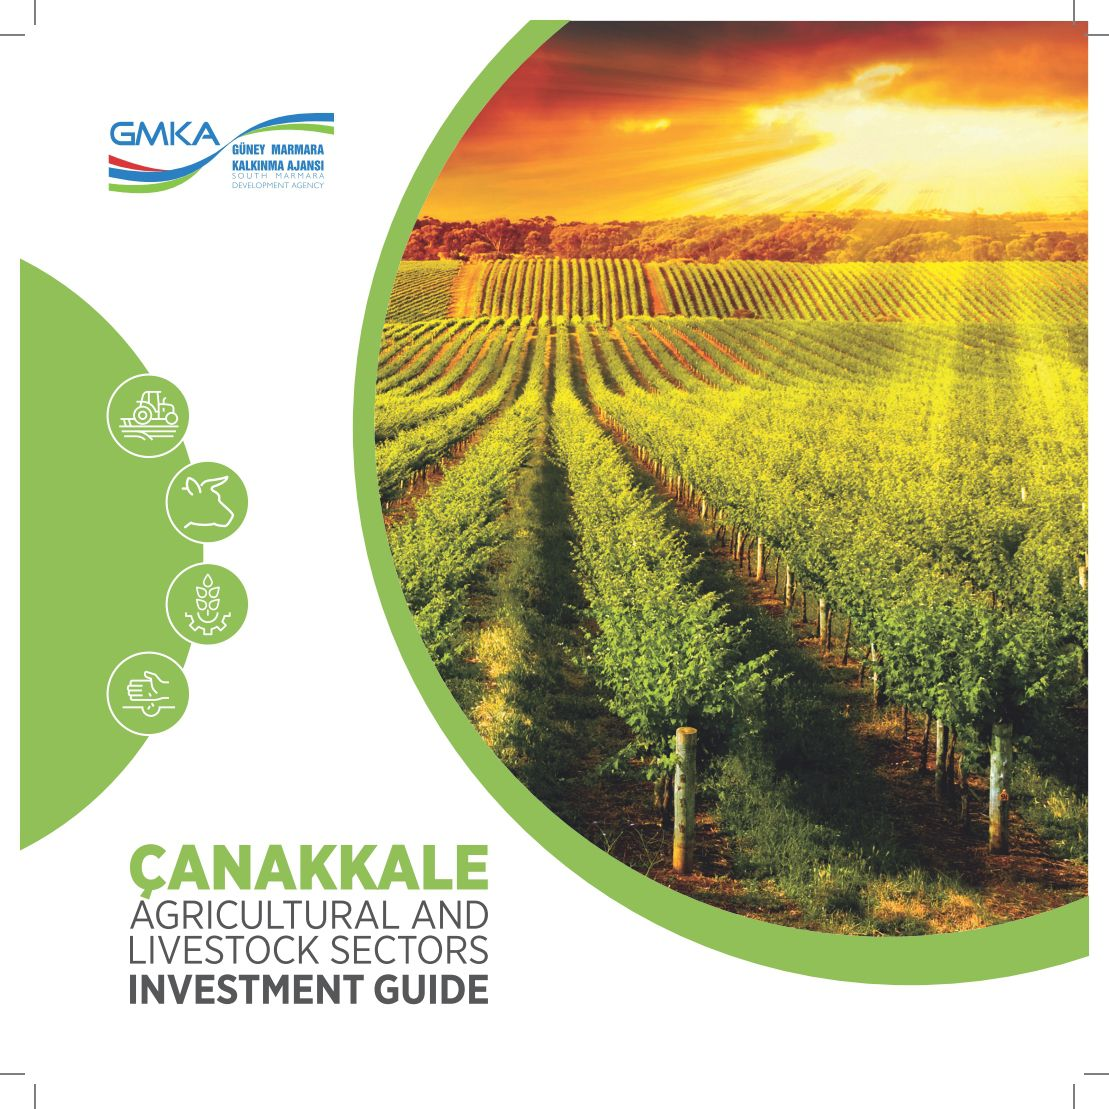 Çanakkale Agriculture and Animal Husbandry Investment Guide